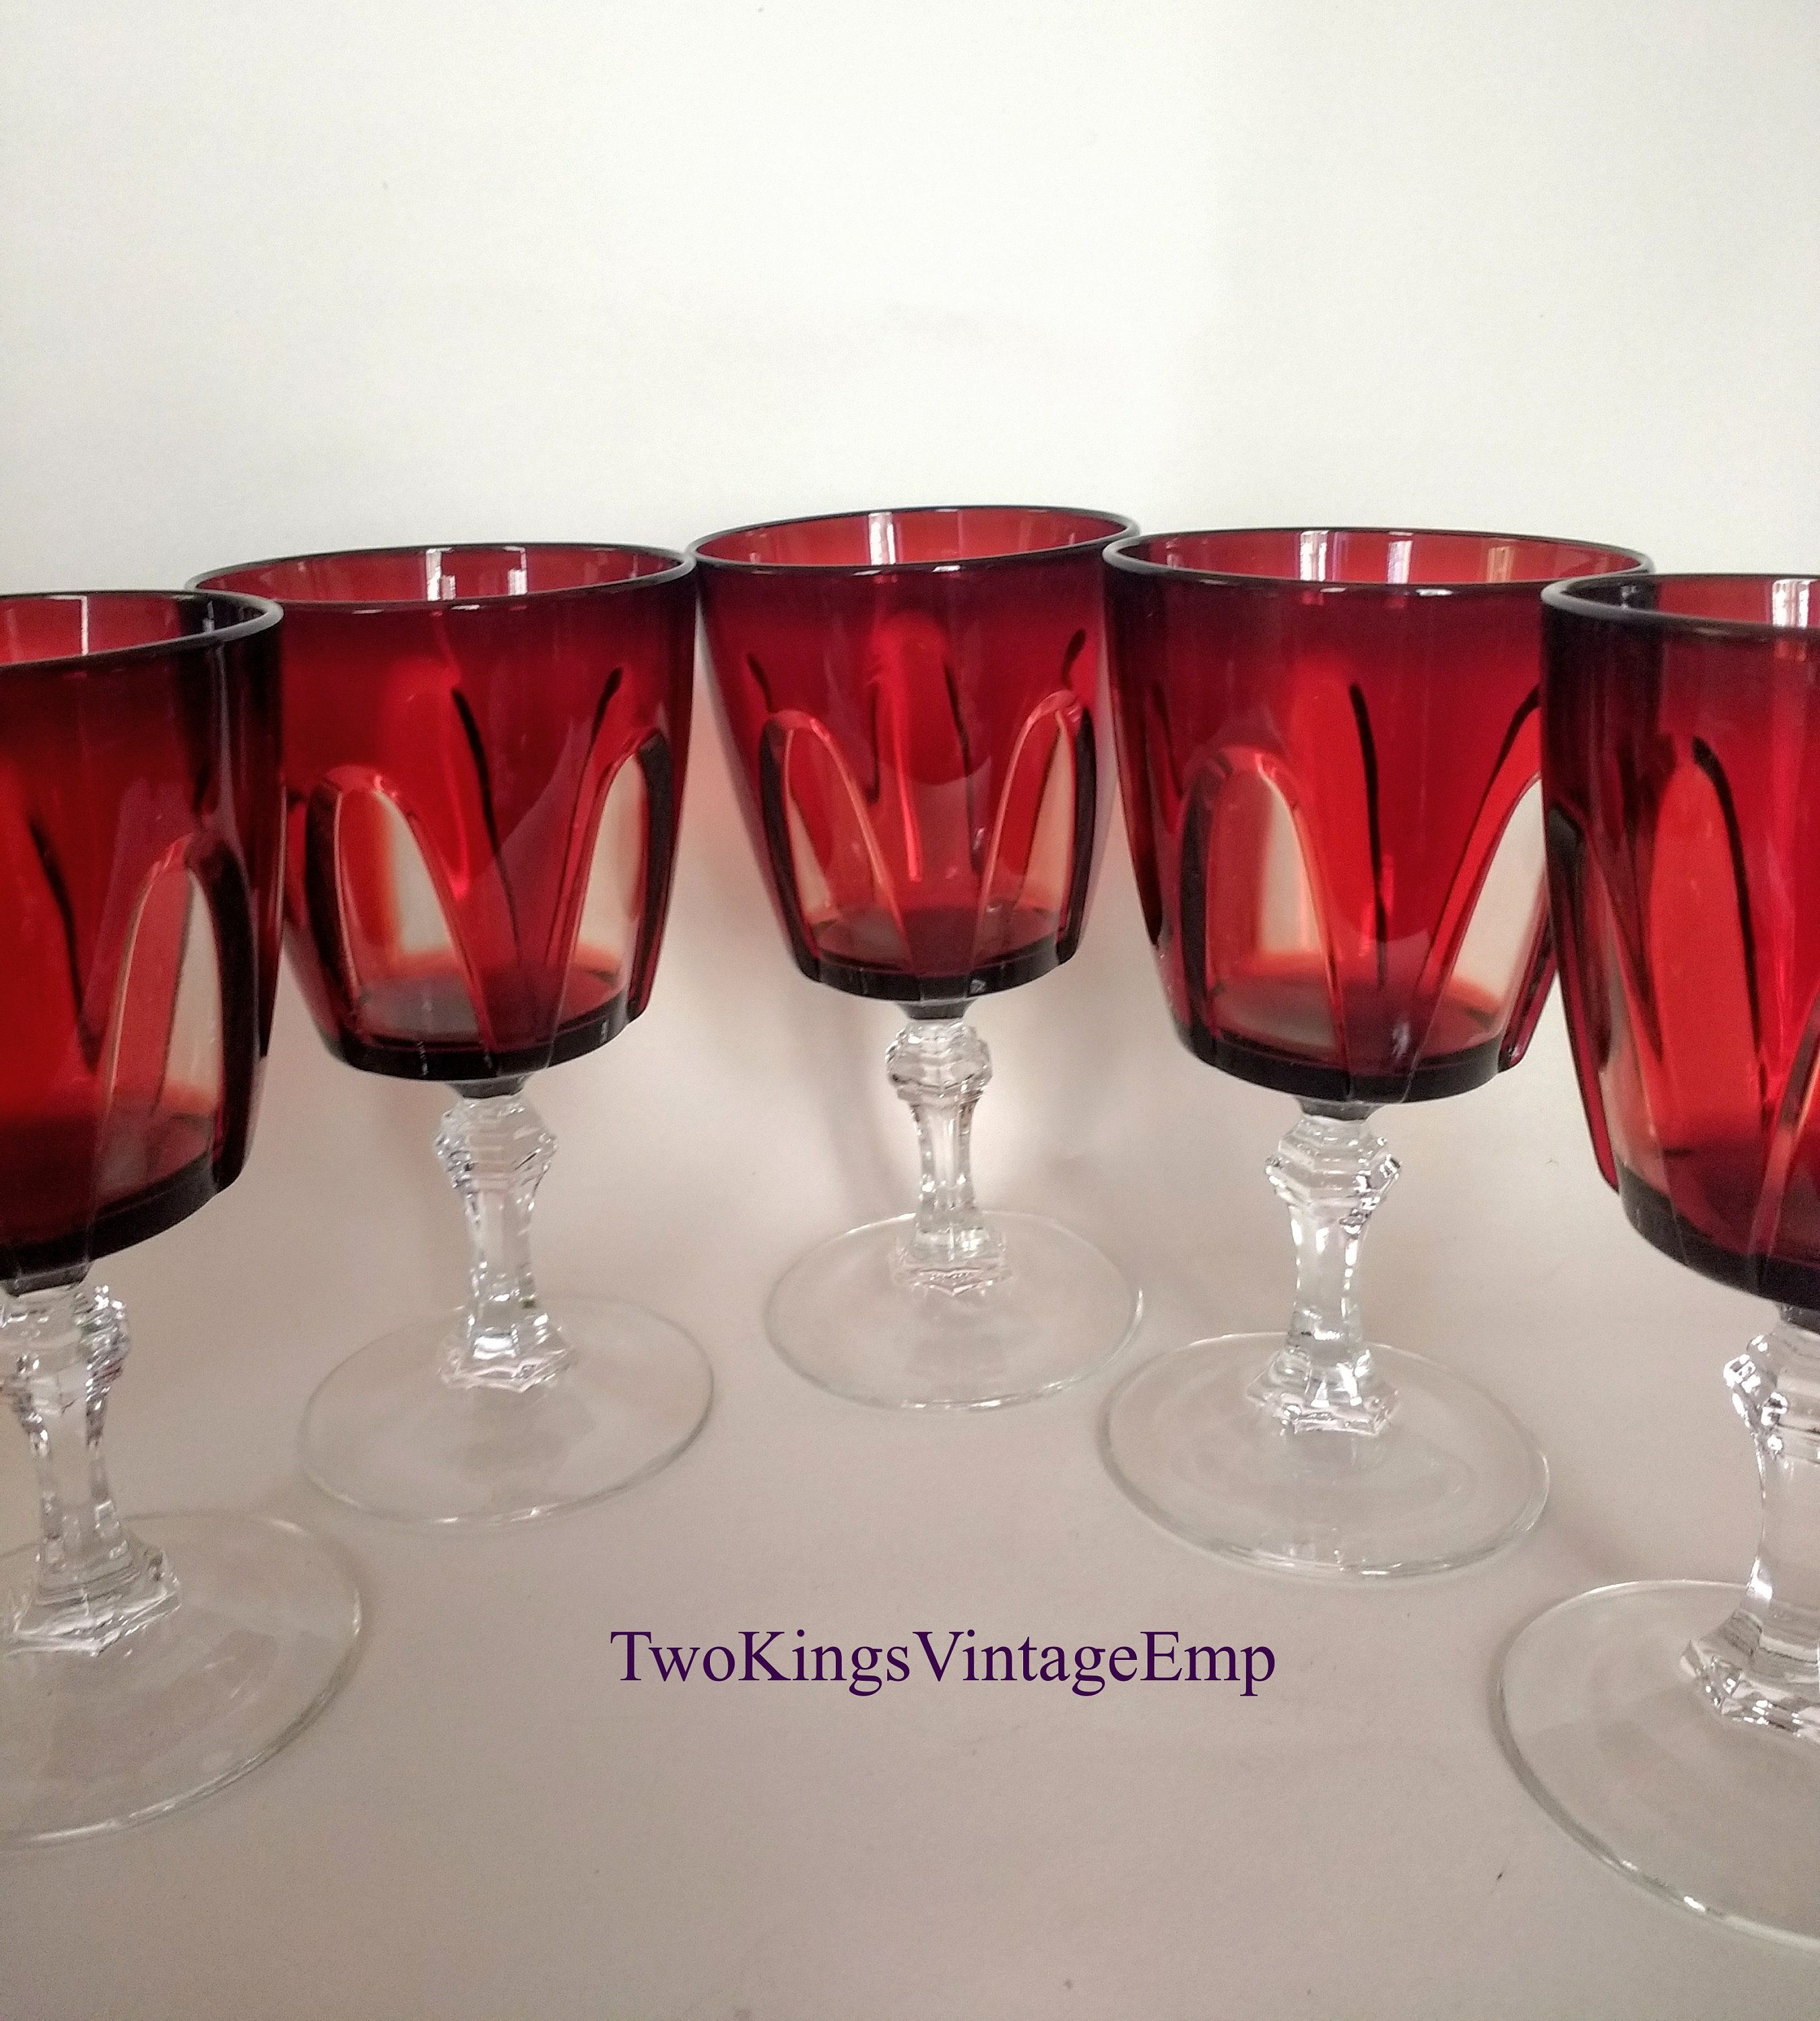 Gothic Glasses Crystal Wine Glasses Set Of 6 Ruby Red Glasses Etsy In 2020 Crystal Wine Glasses Red Wine Glasses Ruby Anniversary Gifts